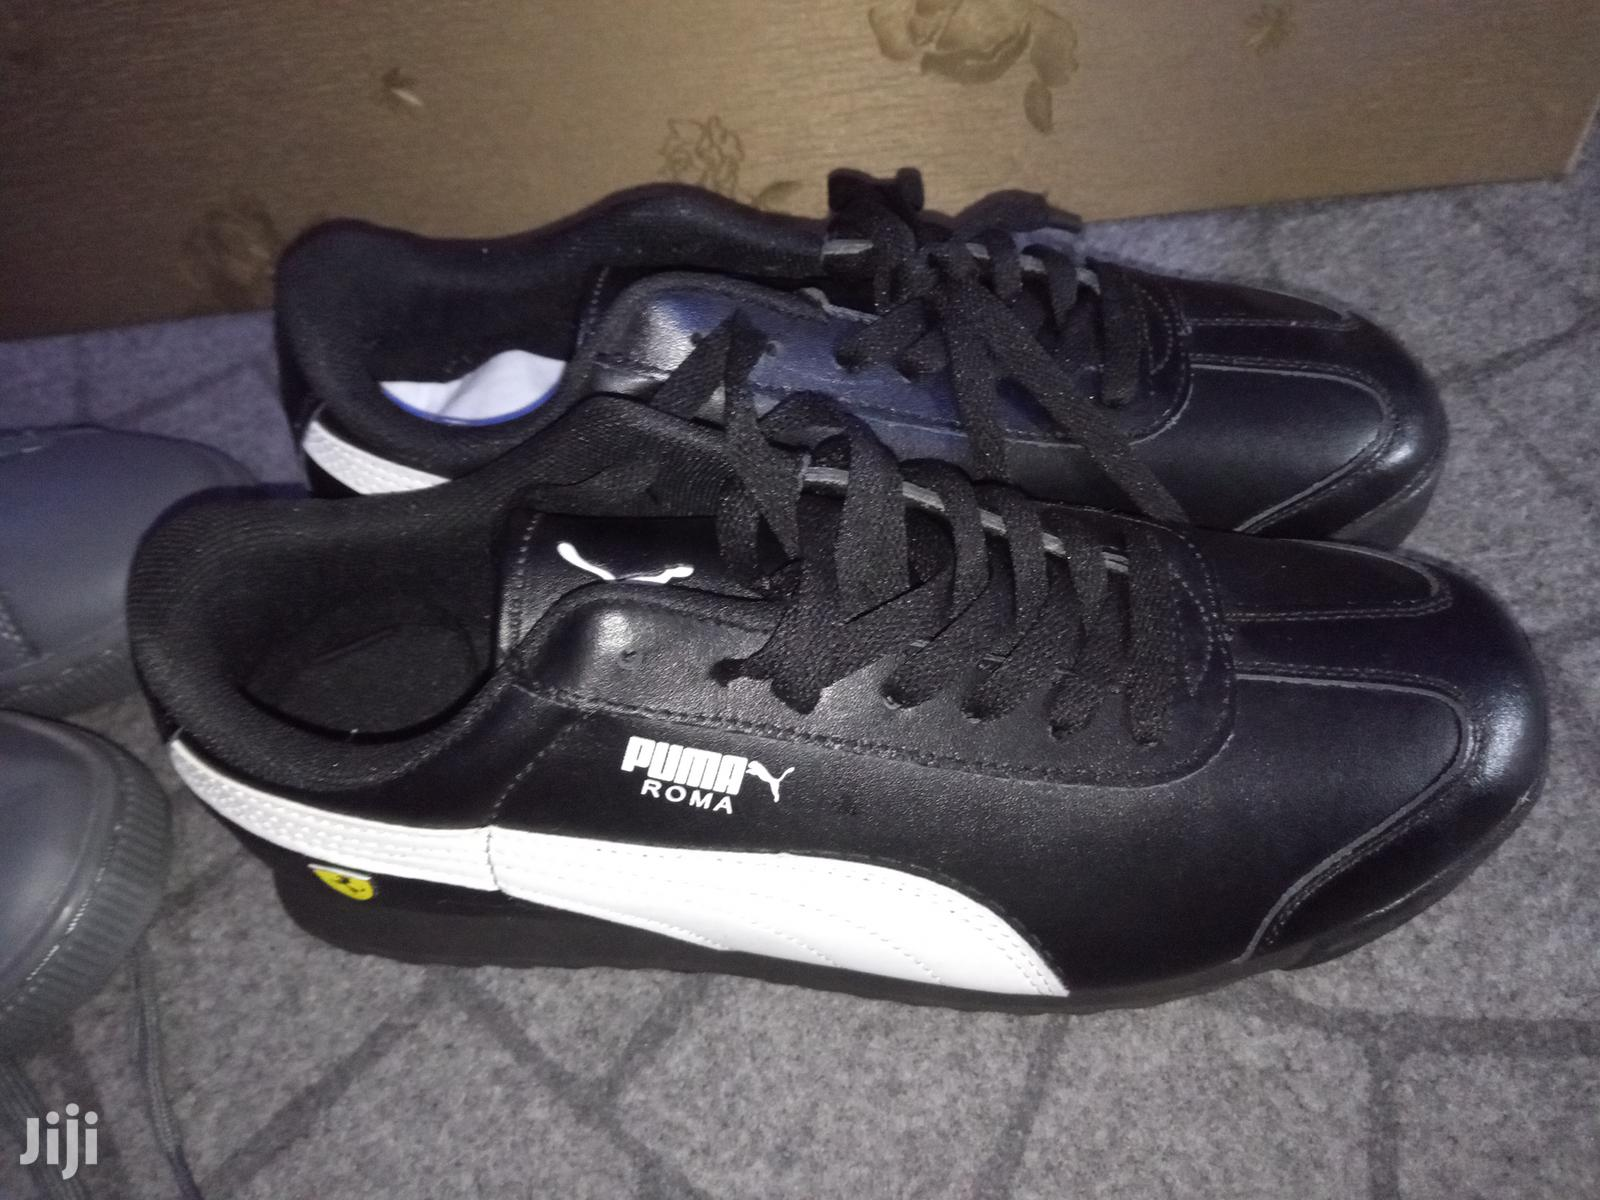 Archive: Puma Roma Black And White